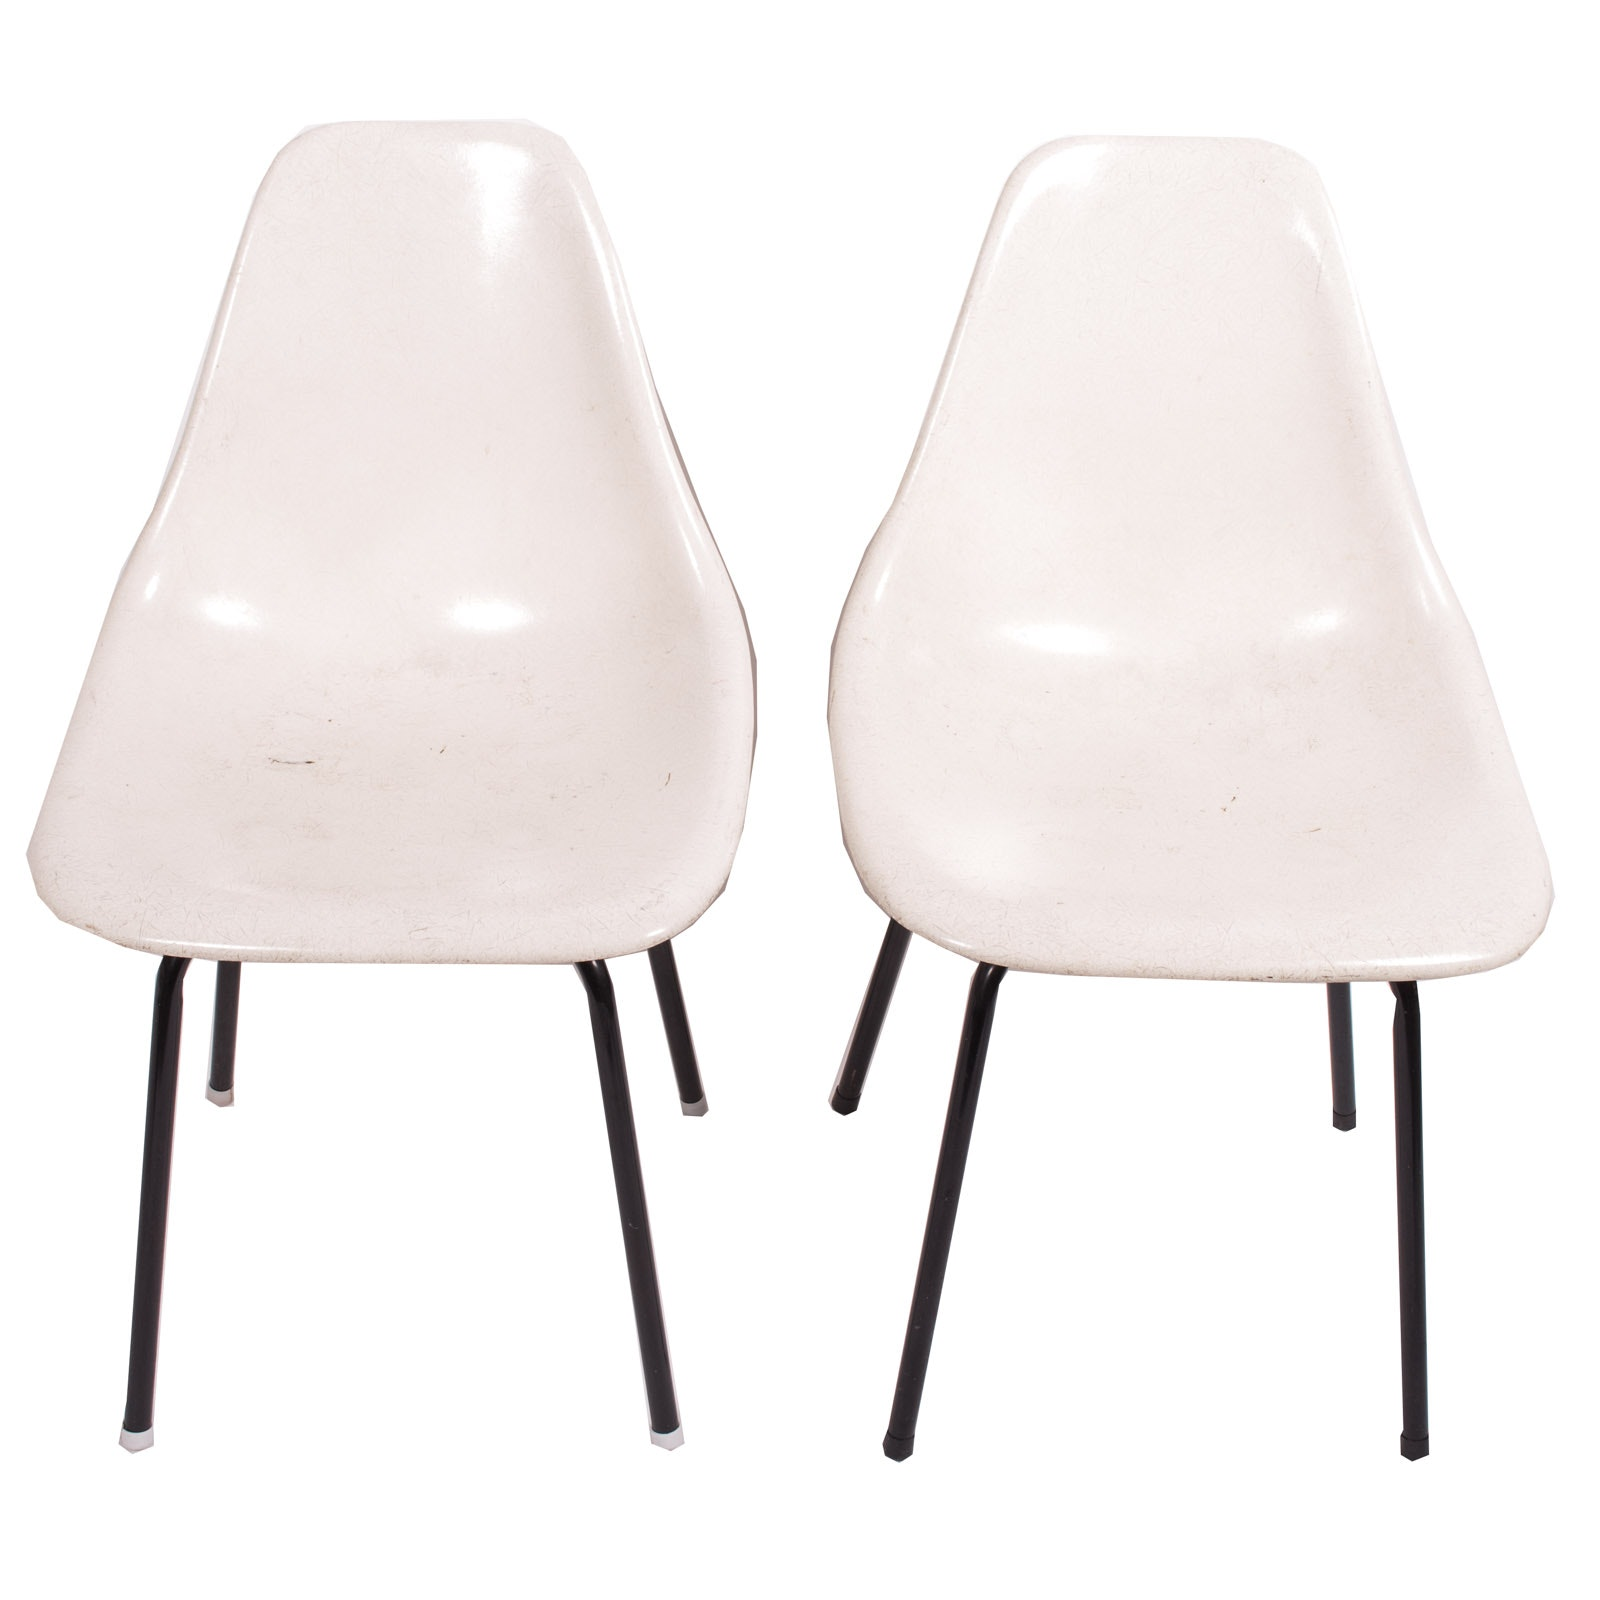 Vintage Mid Century Modern Eames Style Fiberglass Shell Side Chairs